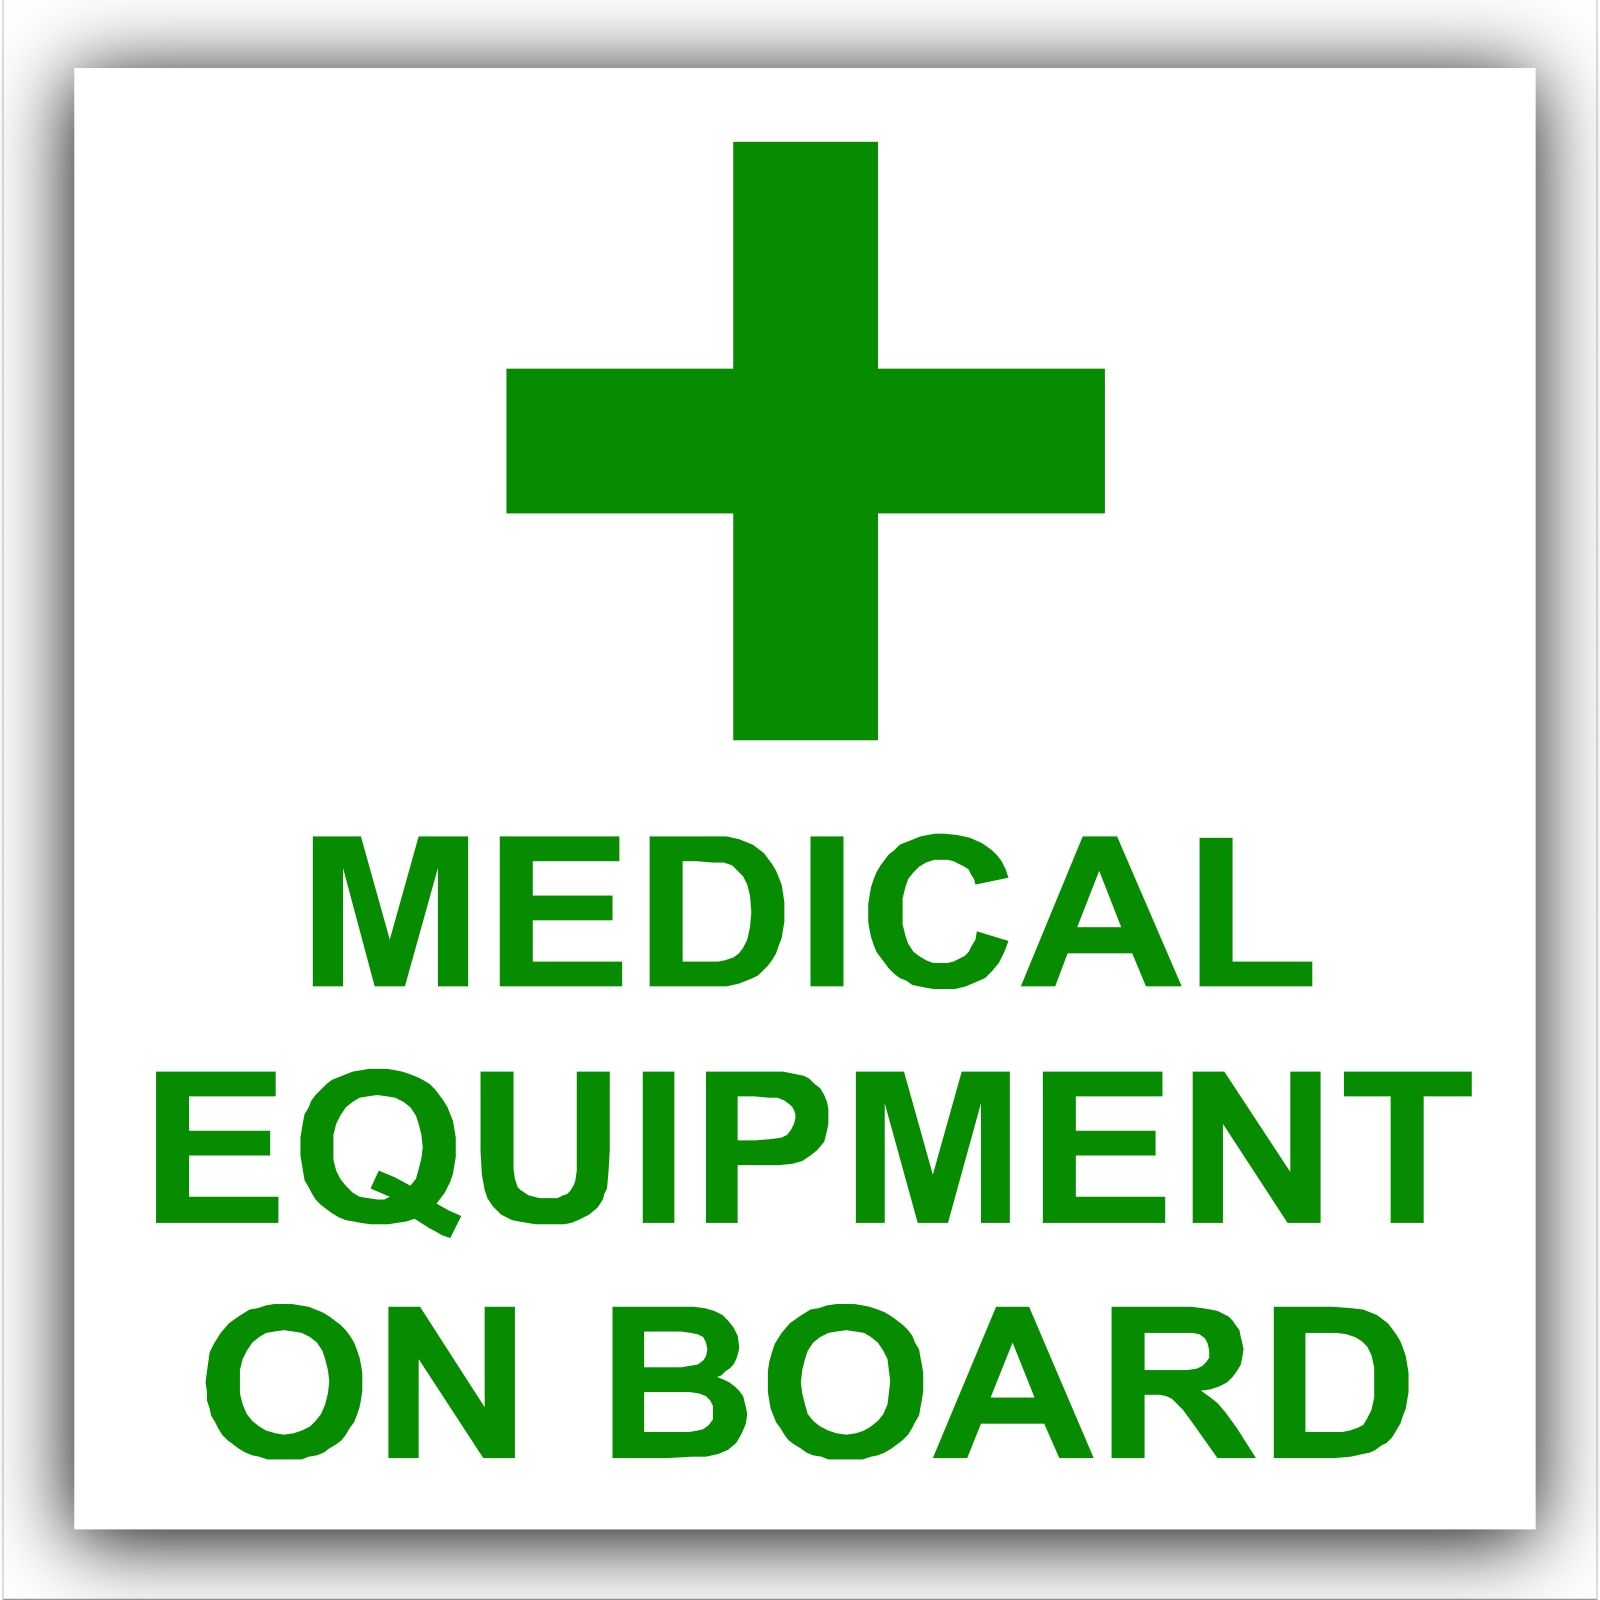 1 x medical equipment on board first aid design self adhesive vinyl 1 x medical equipment on board first aid design self adhesive vinyl sticker carvanbustaxicabminilogo sign biocorpaavc Choice Image